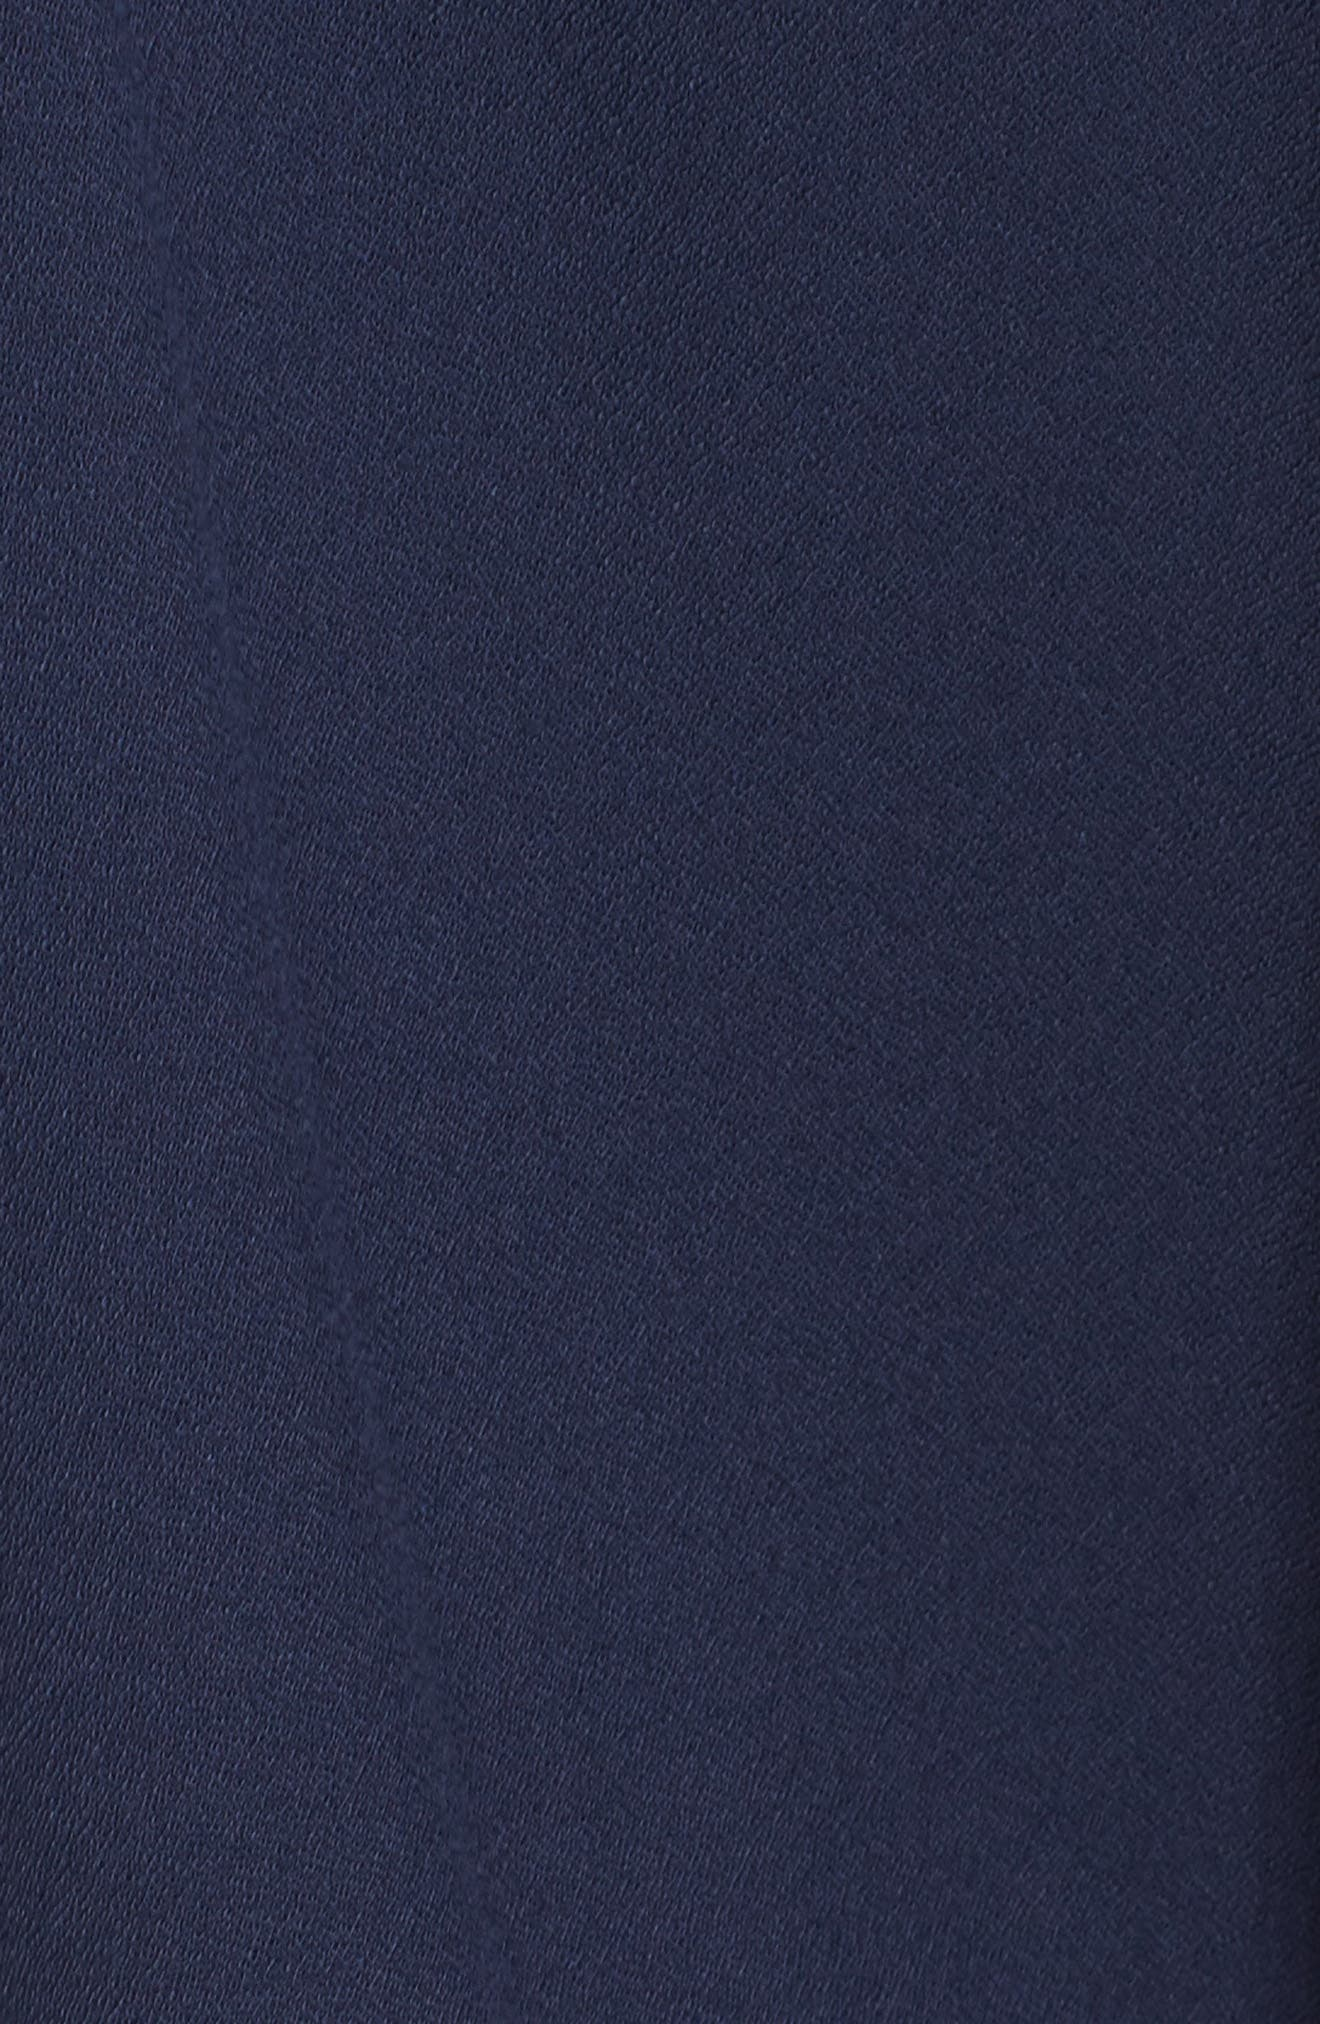 Aubra Embroidered Shift Dress,                             Alternate thumbnail 5, color,                             True Navy